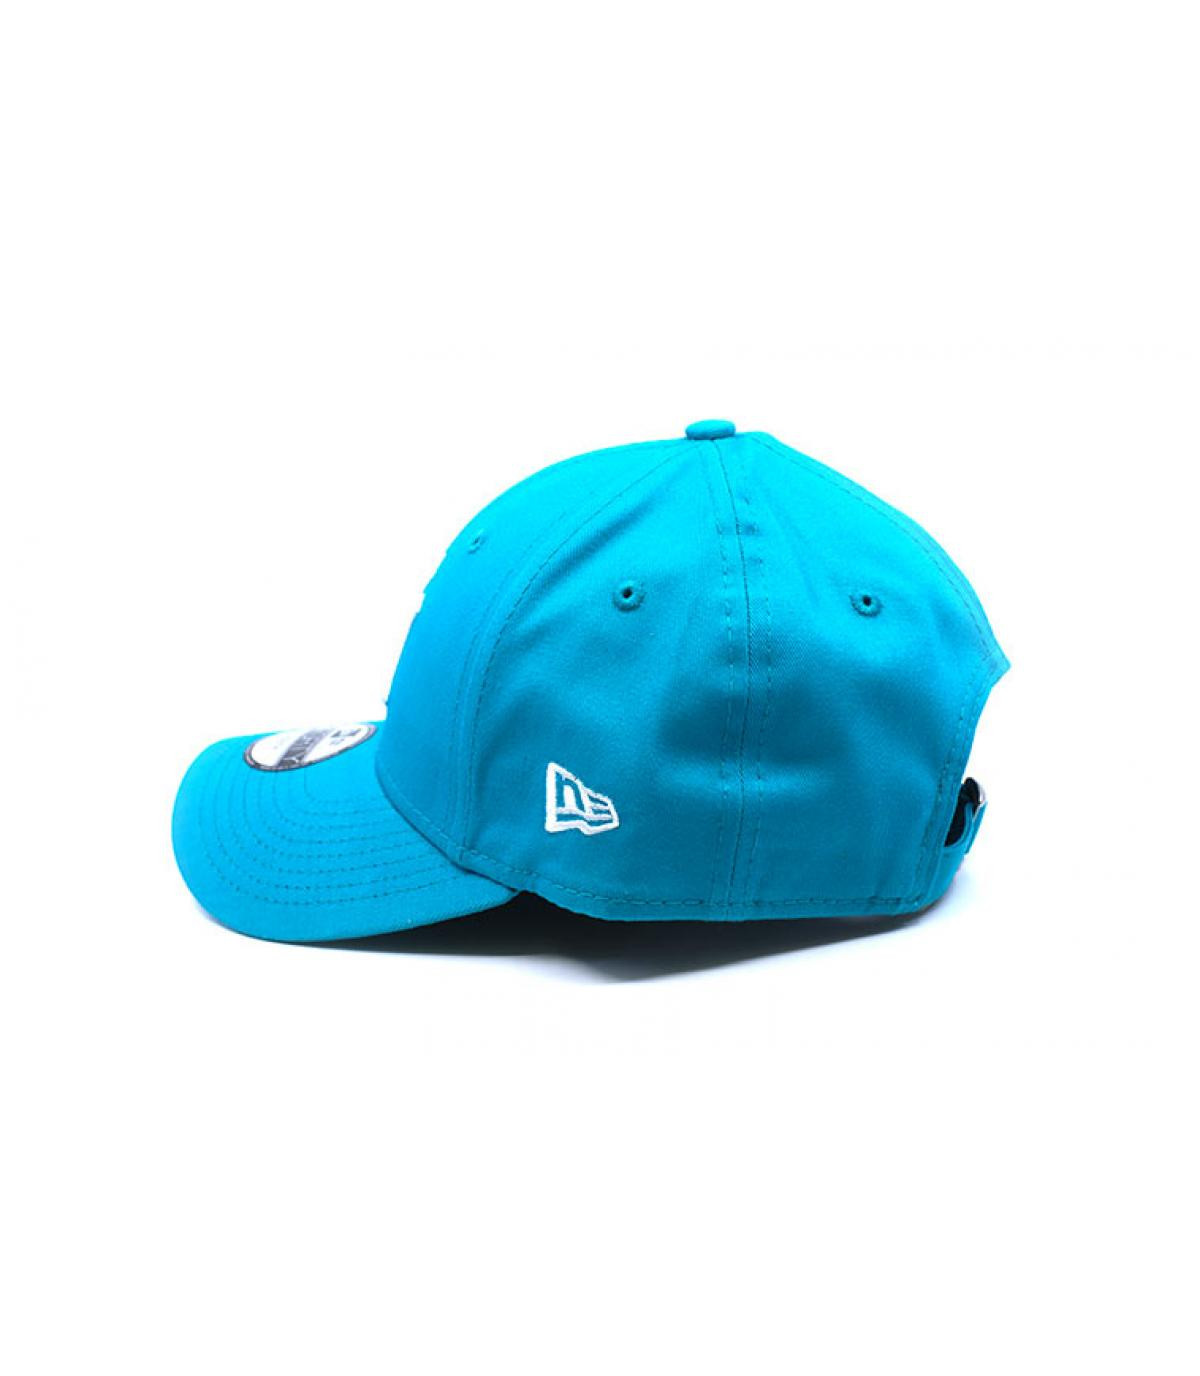 Details Kids League Ess 9Forty NY teal - afbeeling 4